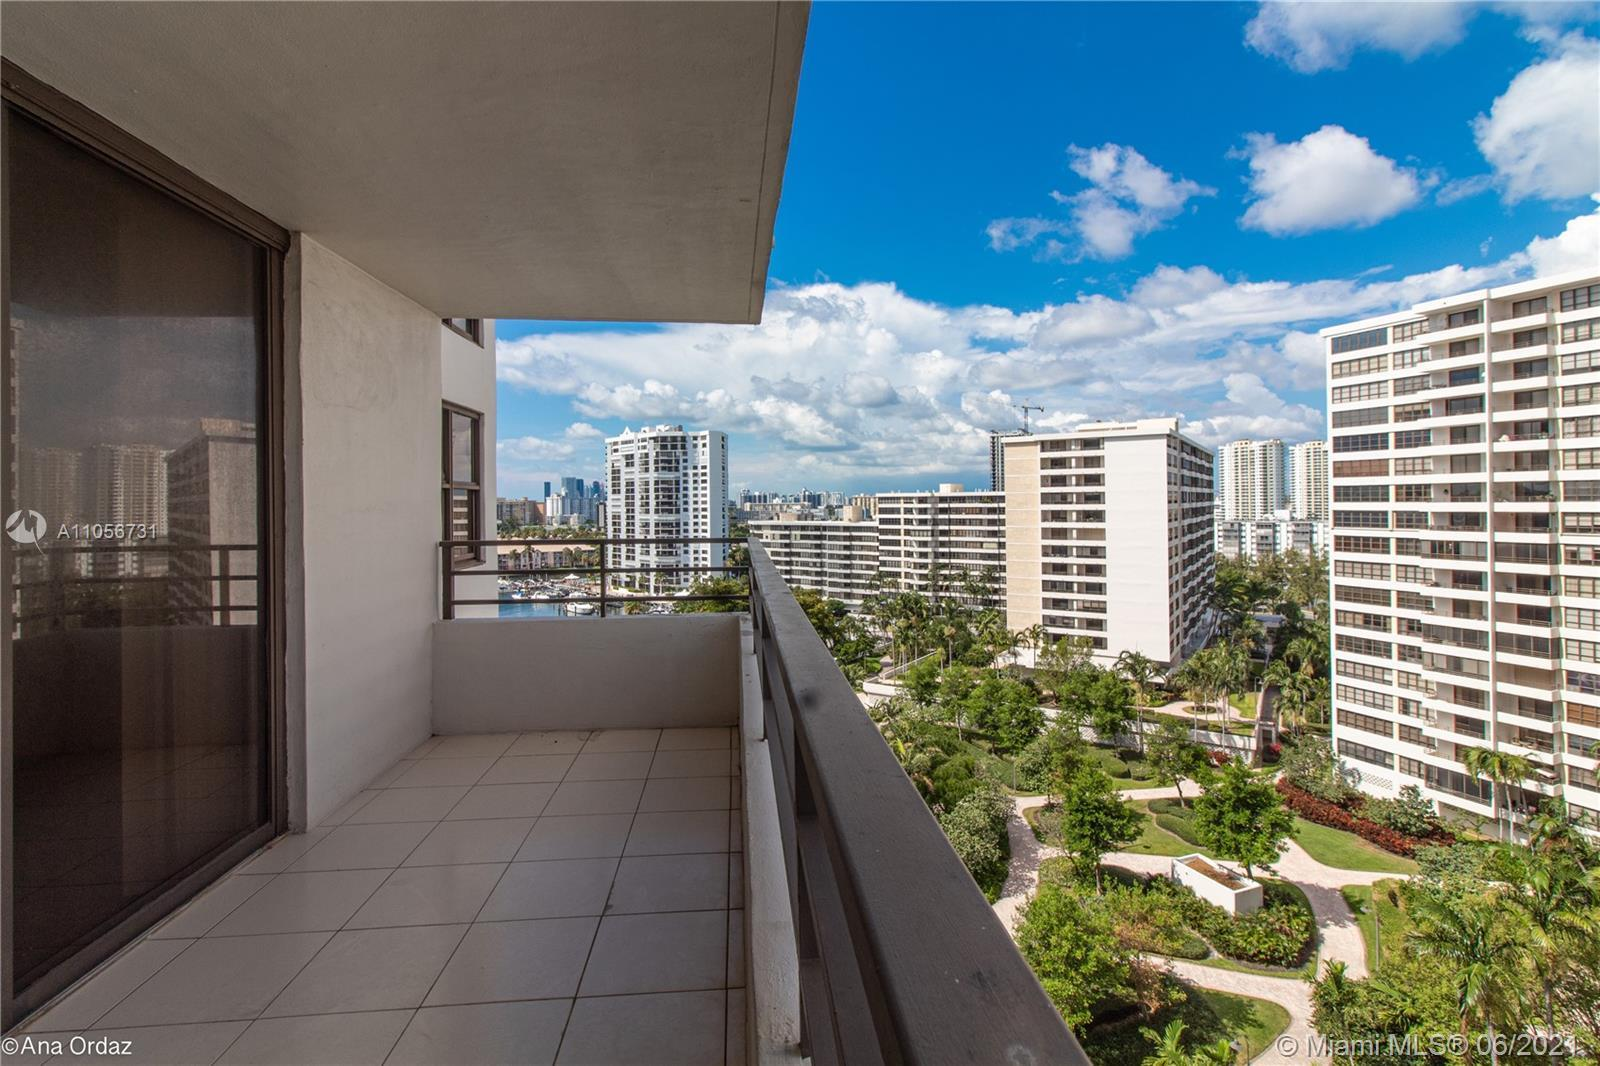 SPECTACULAR VIEWS!WELCOME TO THE OLYMPUS! GREAT LOCATION ON HALLANDALE BEACH! PRIVATE COMMUNITY WITH